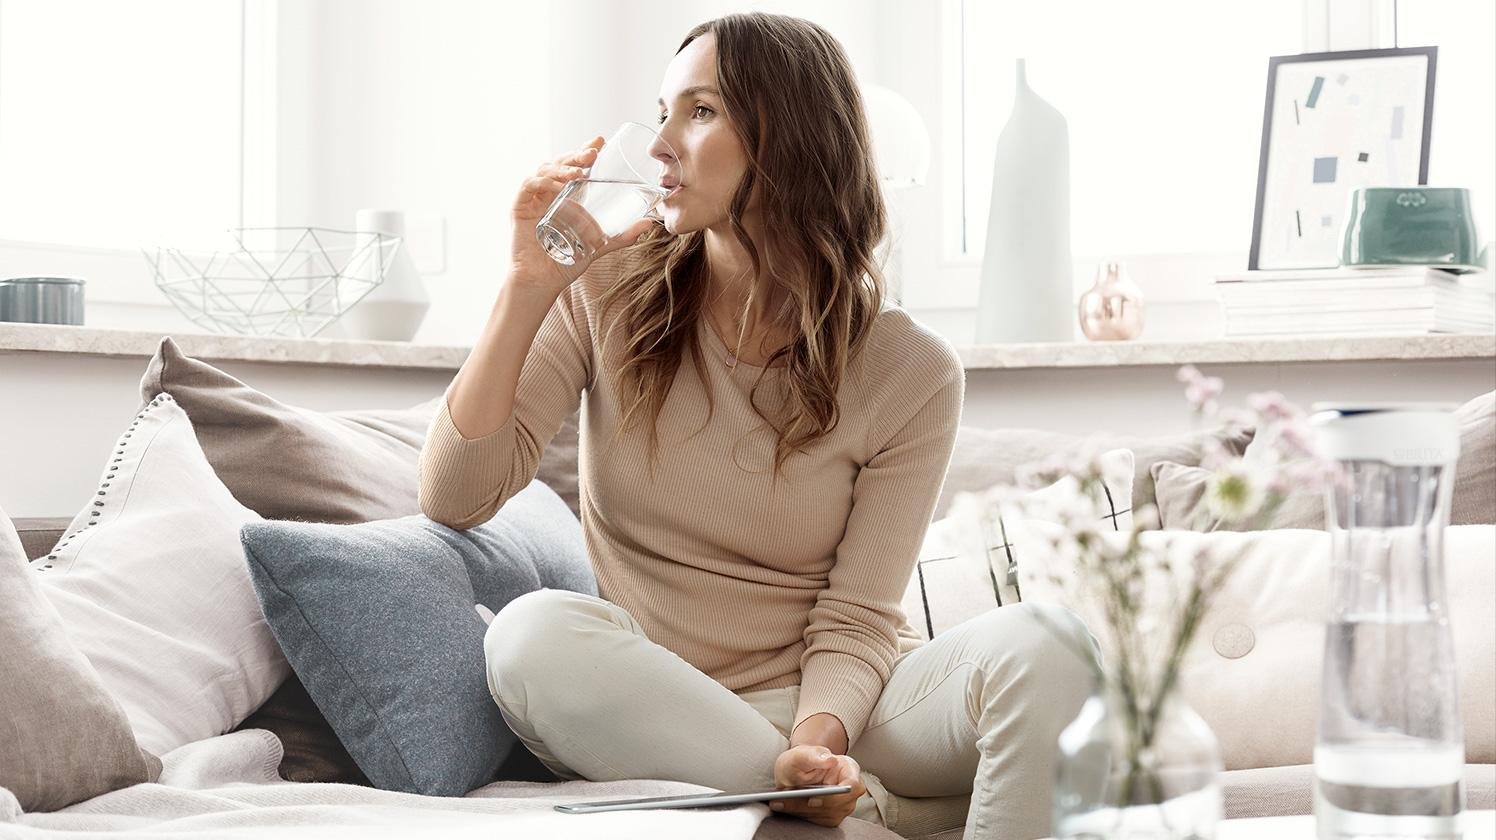 BRITA hydration needs woman couch drinking water